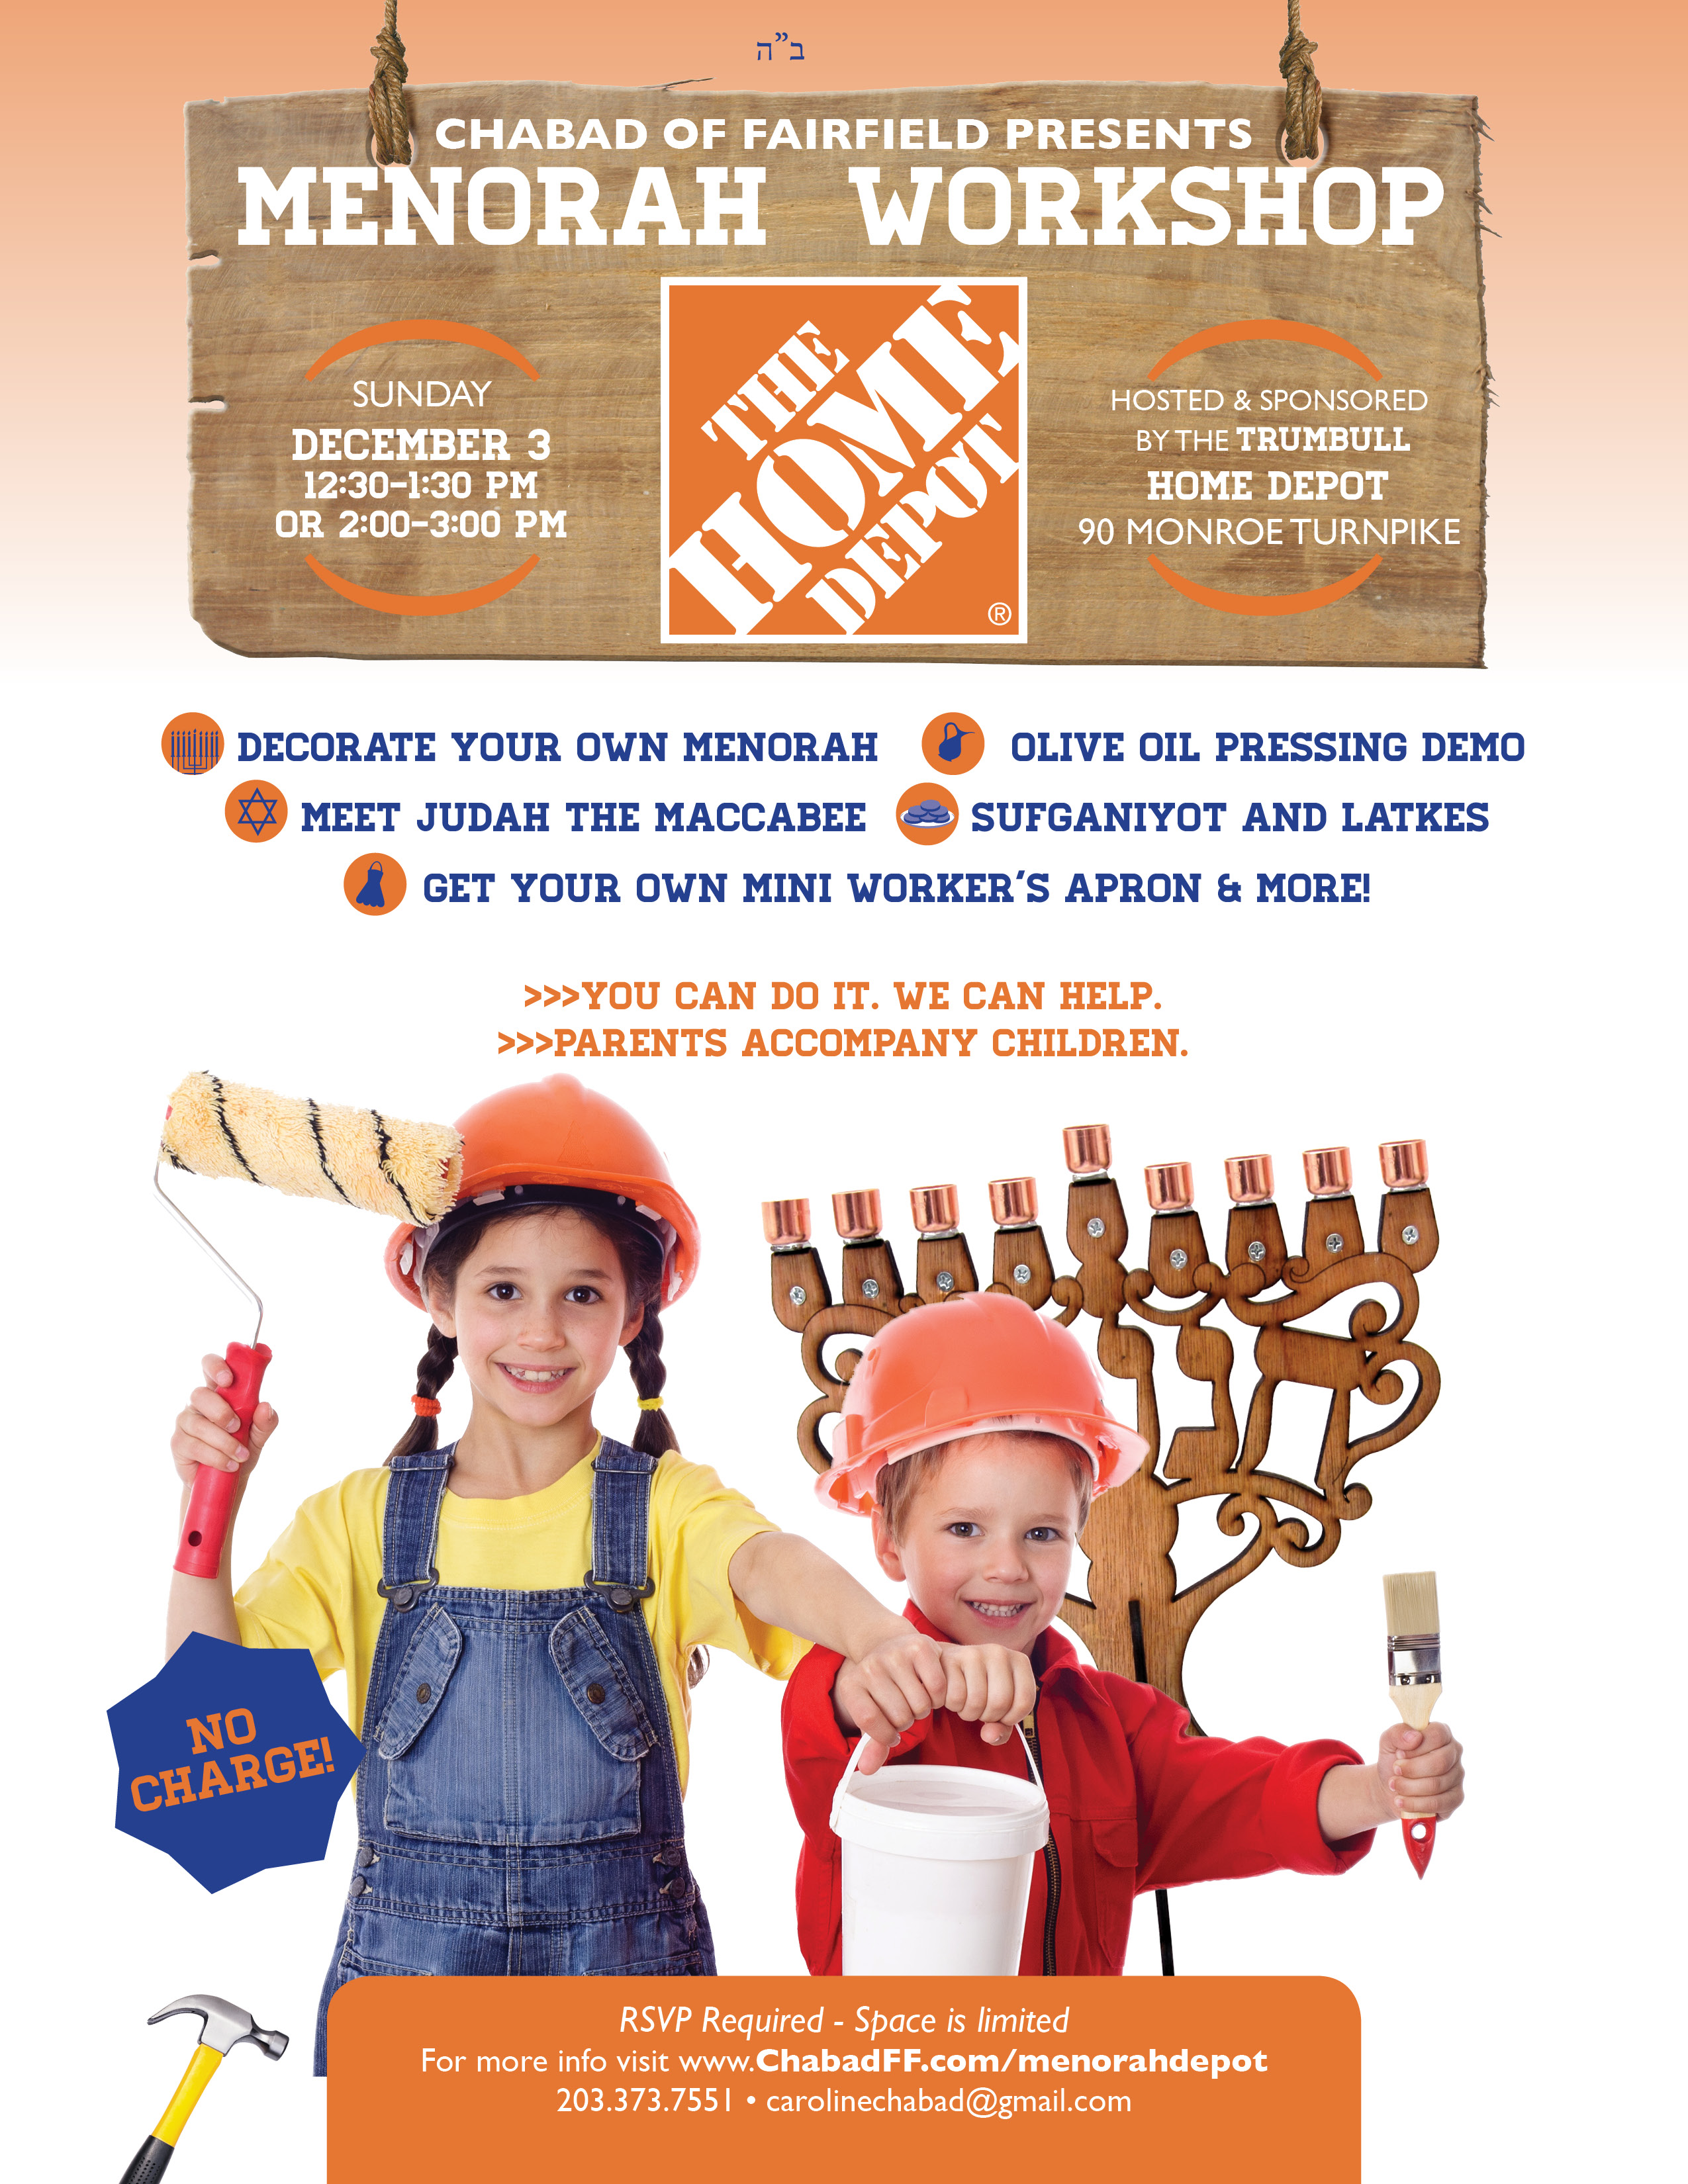 Modish Two Chabad Fairfield Presents A Menorah Workshop At Trumbull Home Depot On December Fairfield Hosts A Menorah Workshop Home Depot Norwalk Ct Truck Rental Home Depot Norwalk Ct Directions Ct Cha houzz-03 Home Depot Norwalk Ct